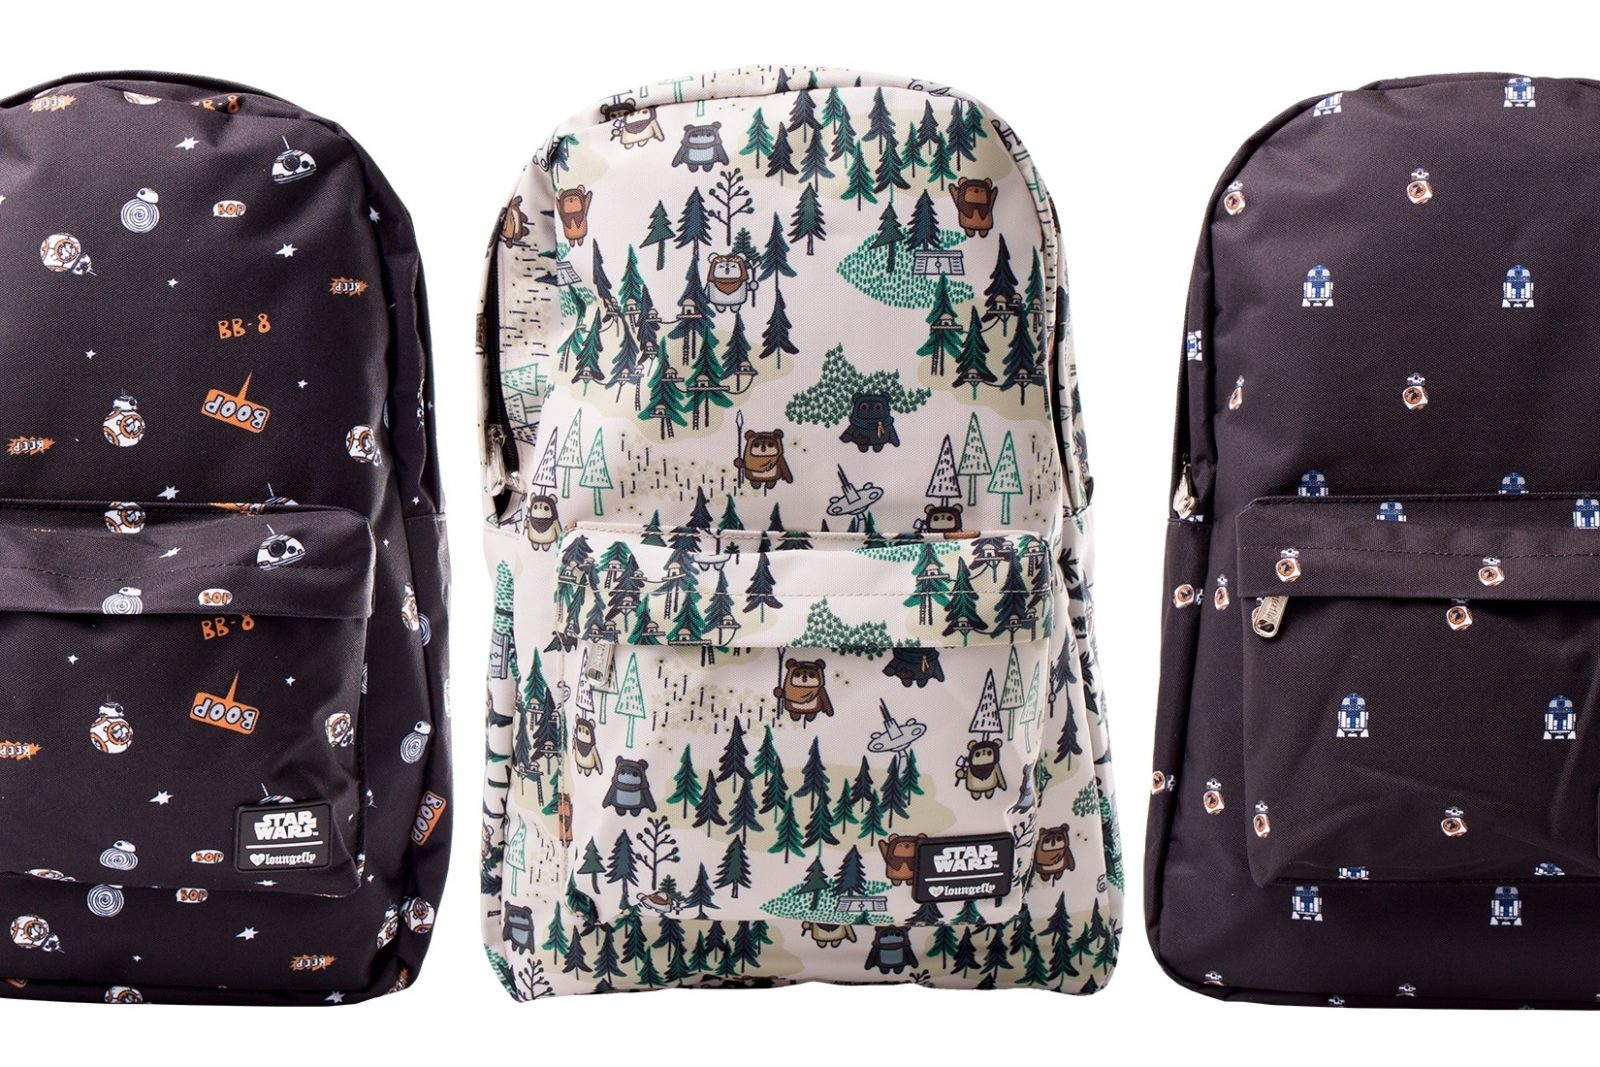 New Loungefly x Star Wars Backpacks